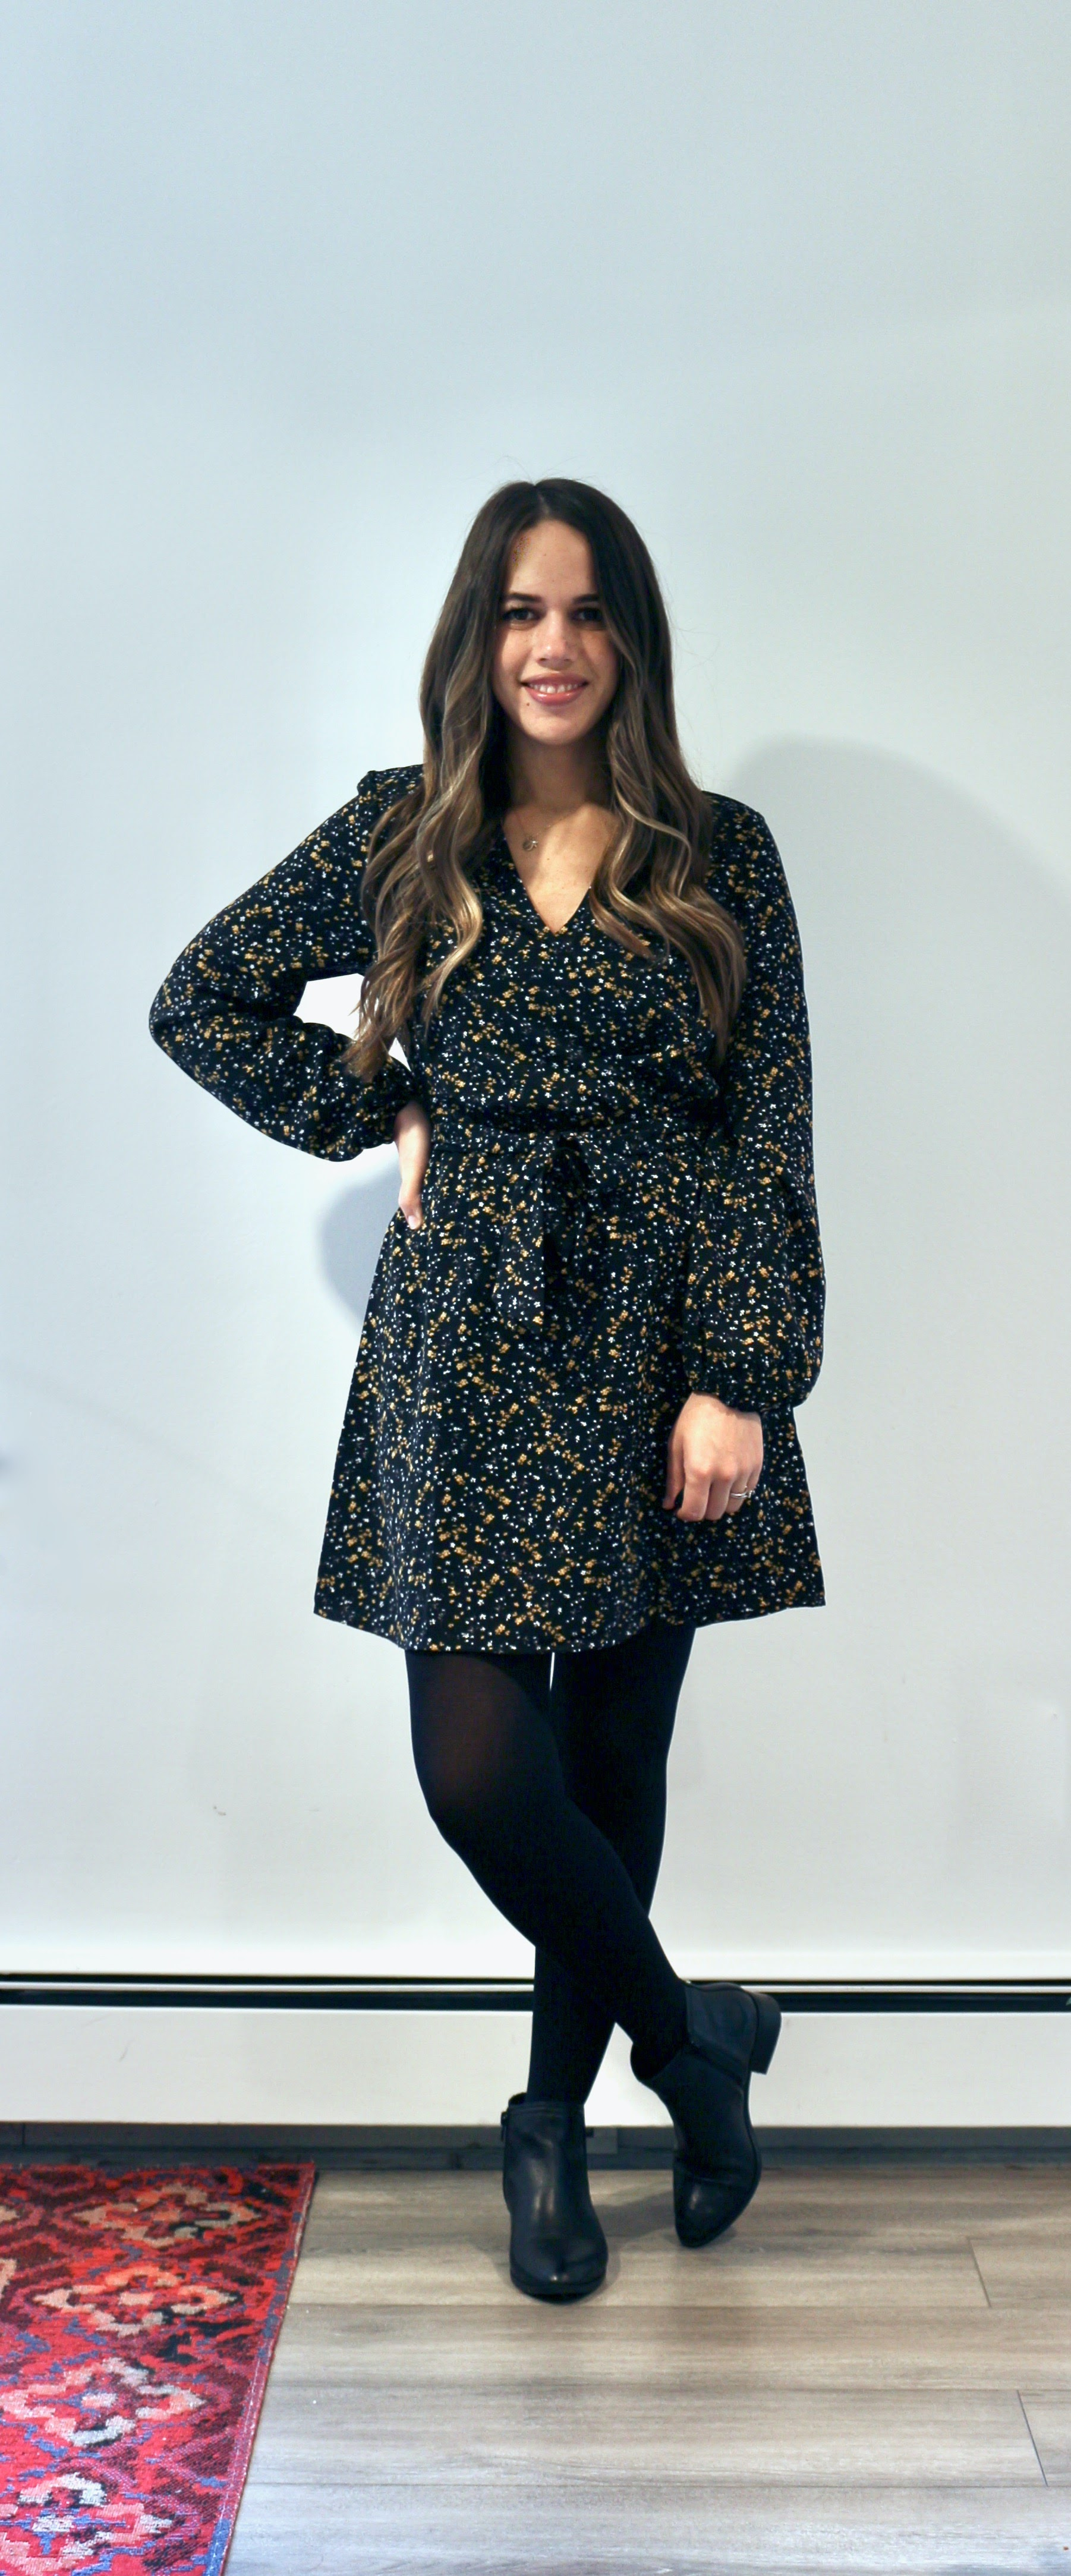 Jules in Flats - Long Sleeve Wrap Dress (Business Casual Workwear on a Budget)